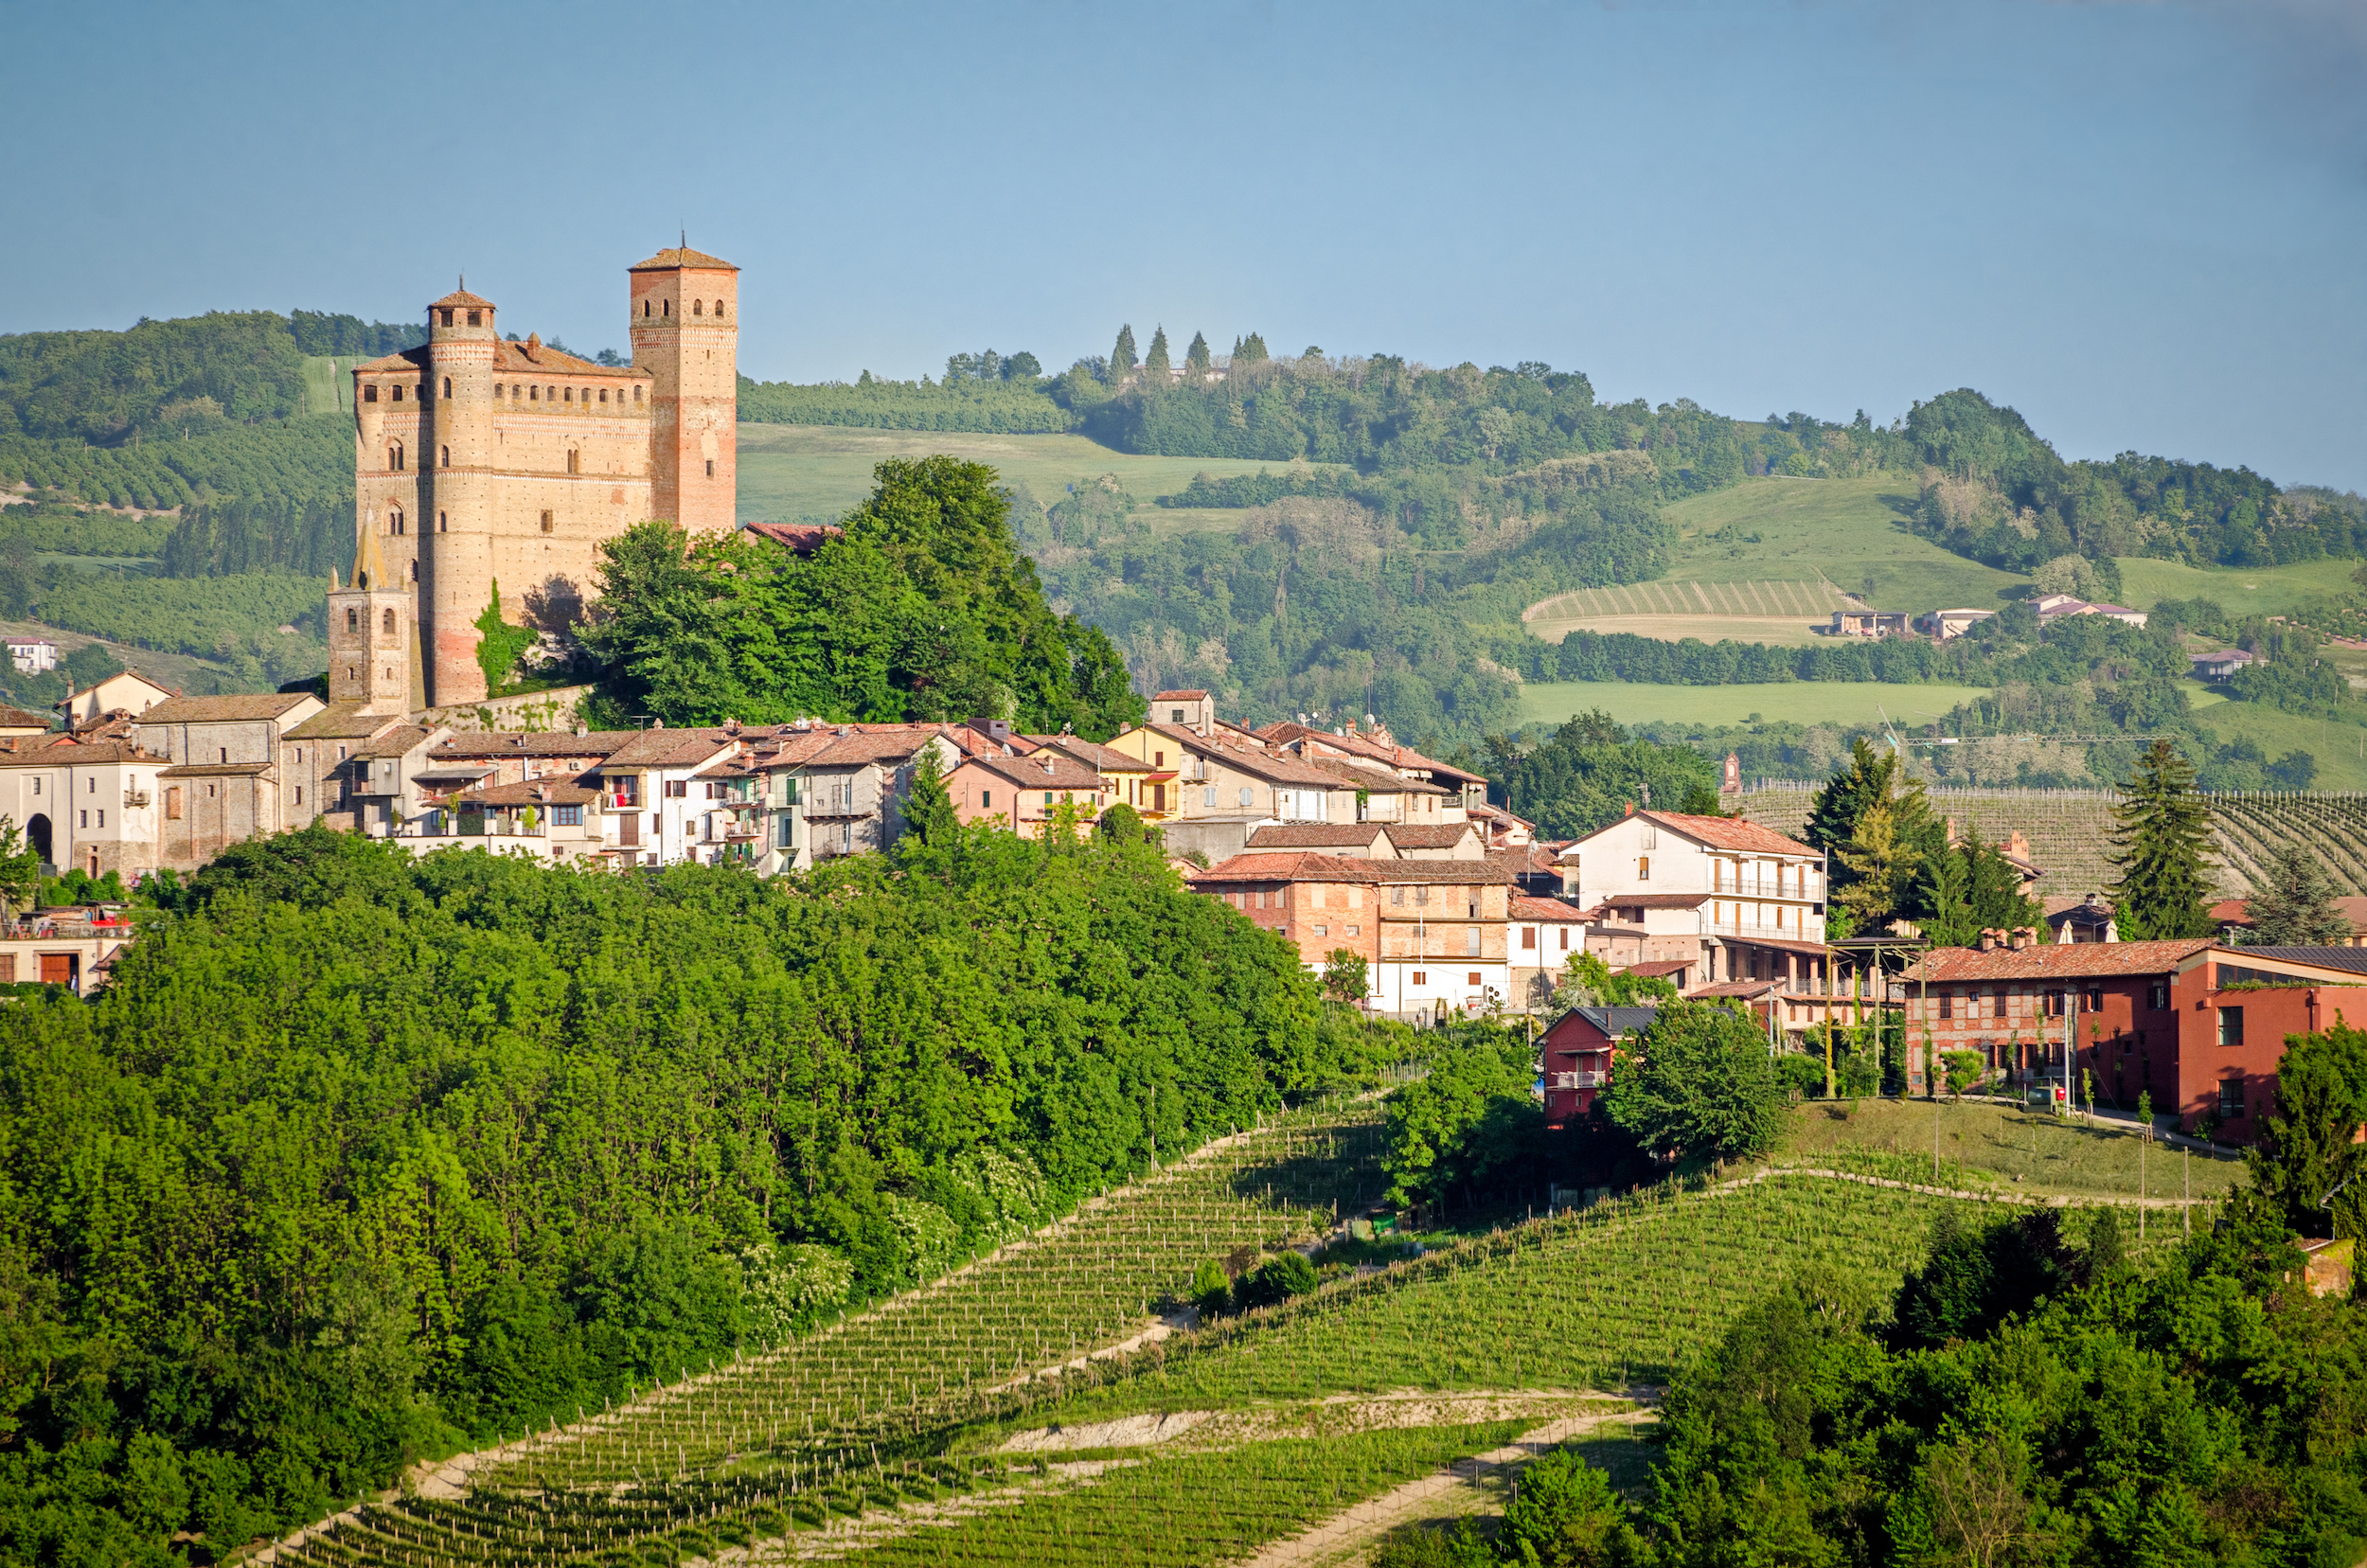 An insider's guide to the famed winemakers of Piedmont